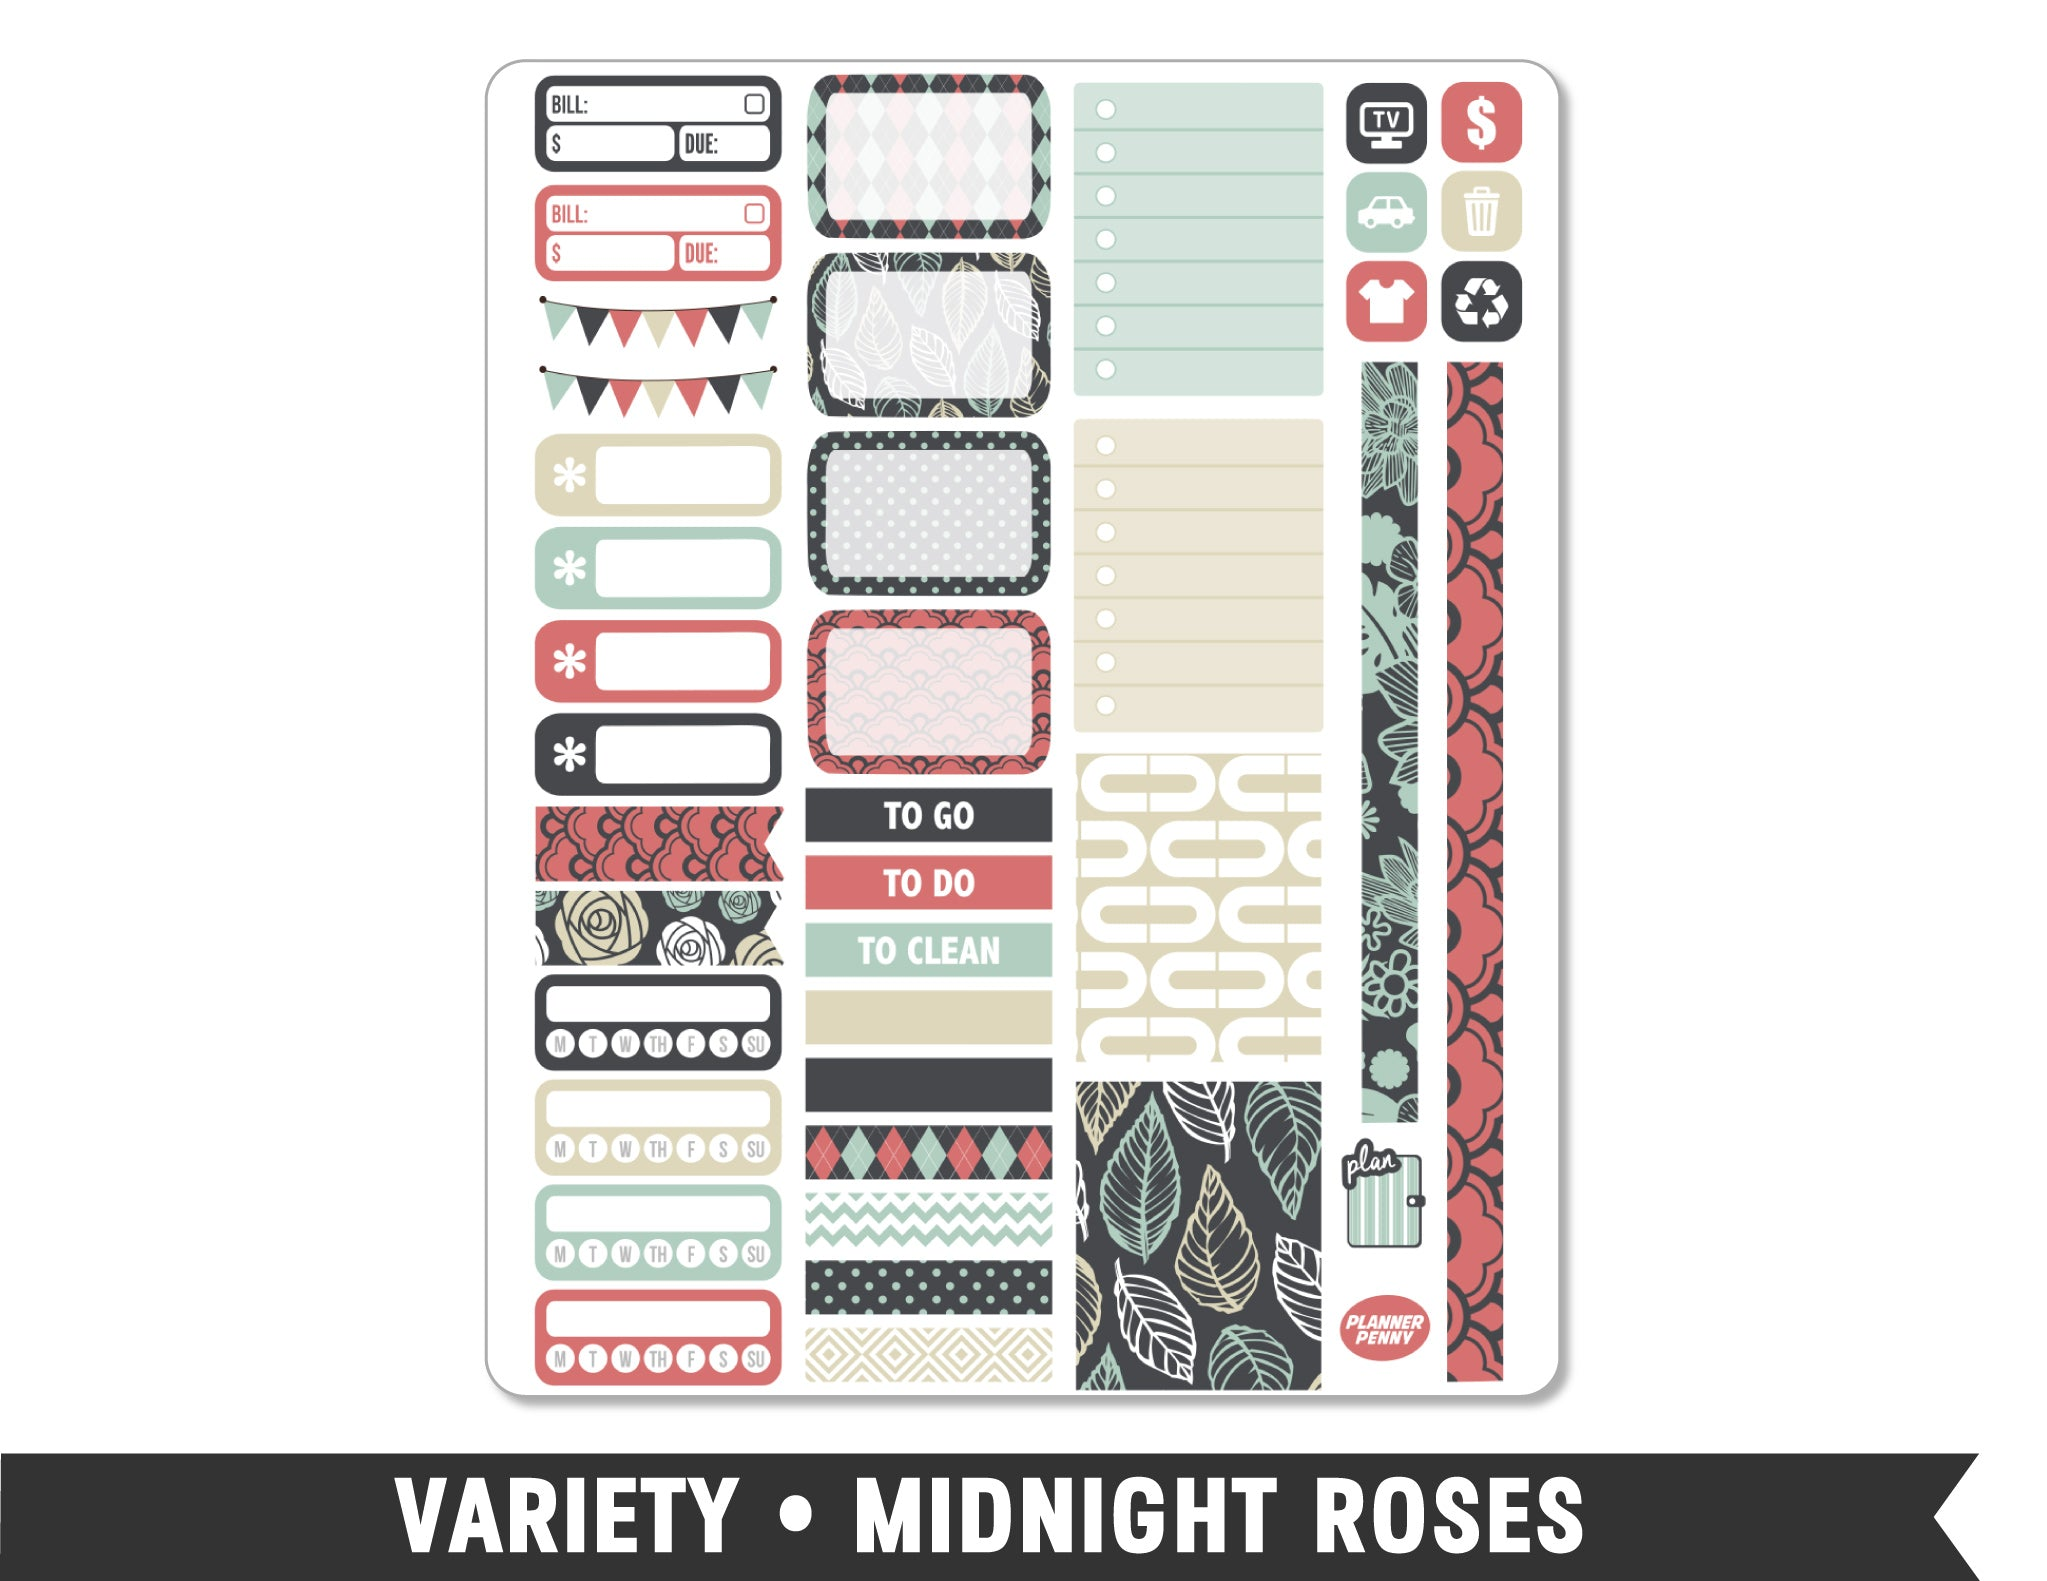 Variety • Midnight Roses Weekly Spread Planner Stickers